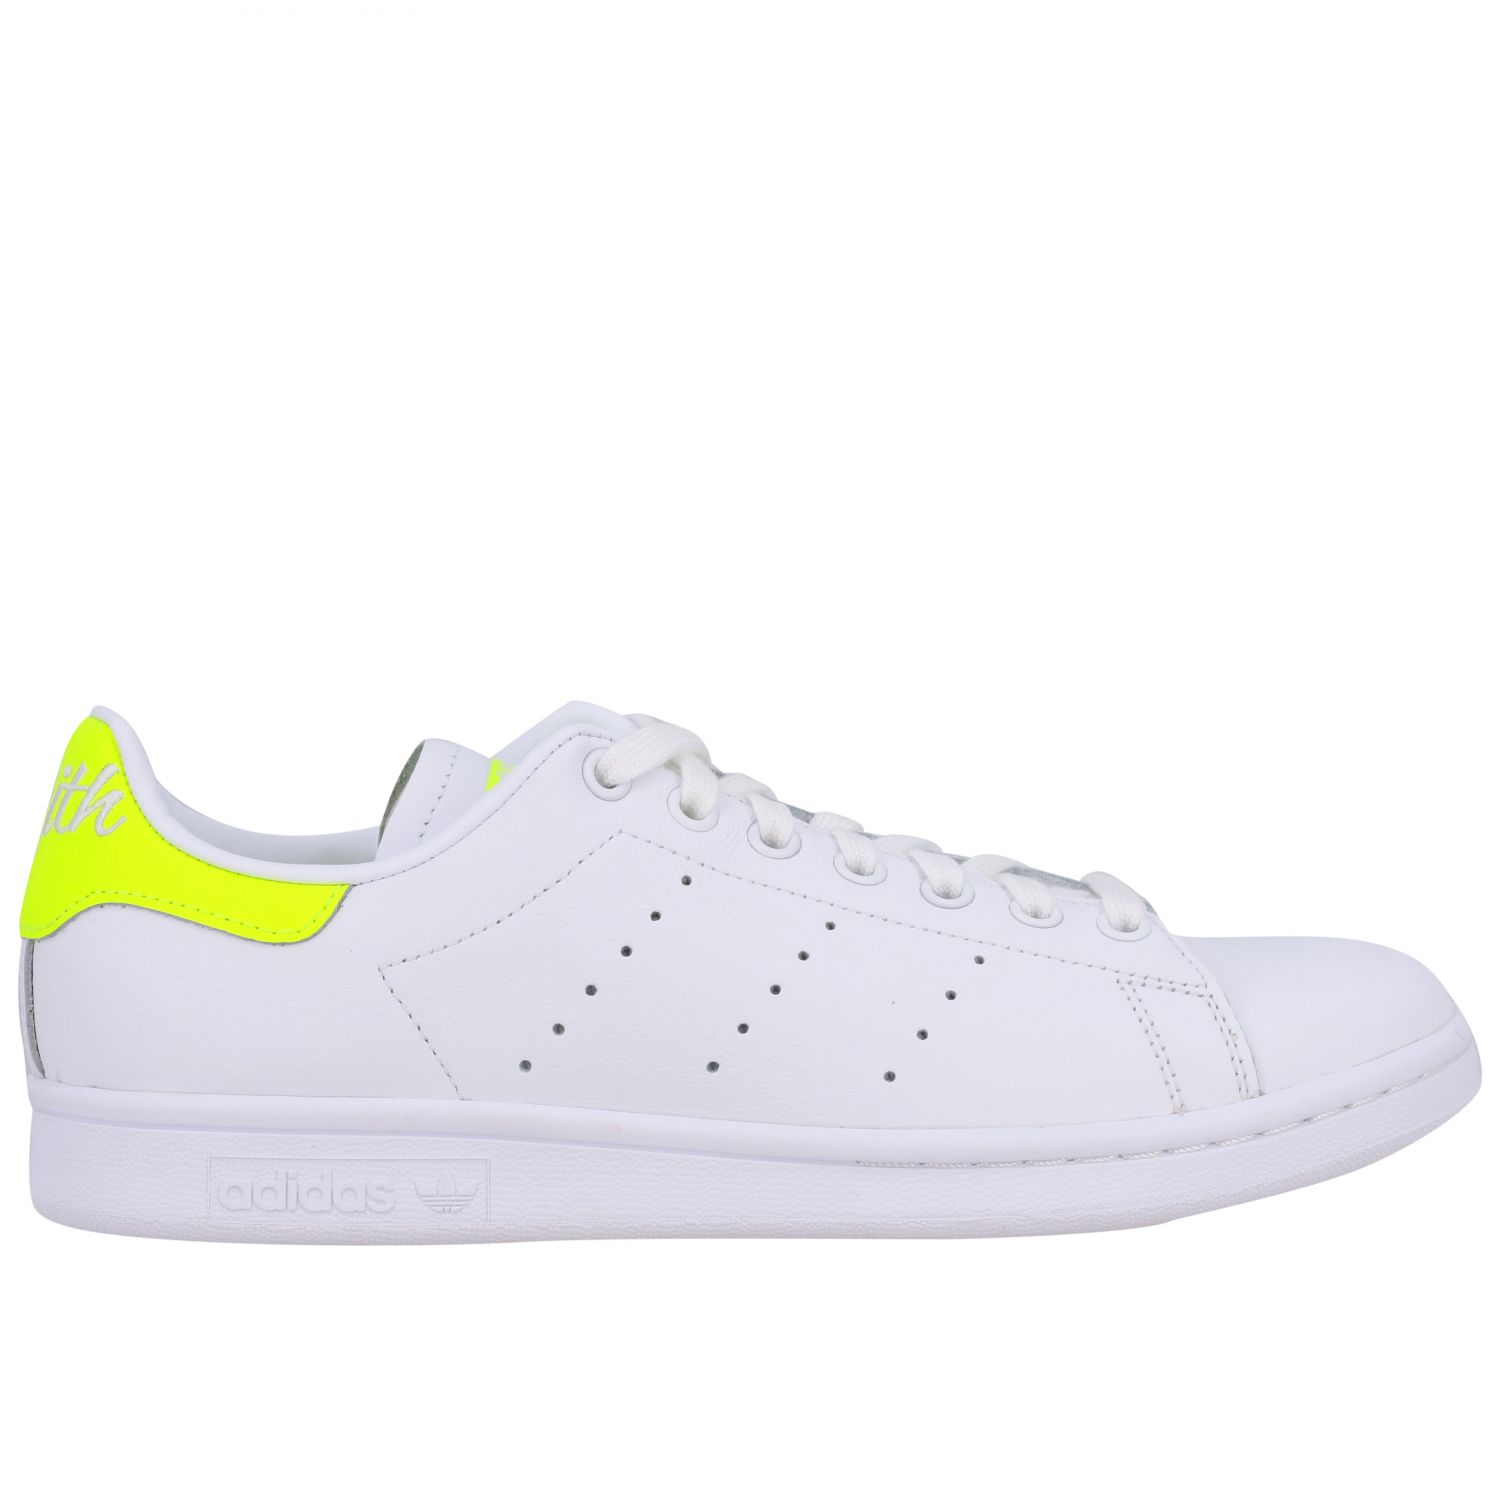 Sneakers Adidas Originals: Stan smith sneakers pelle tallone giallo ricamo bianco 1